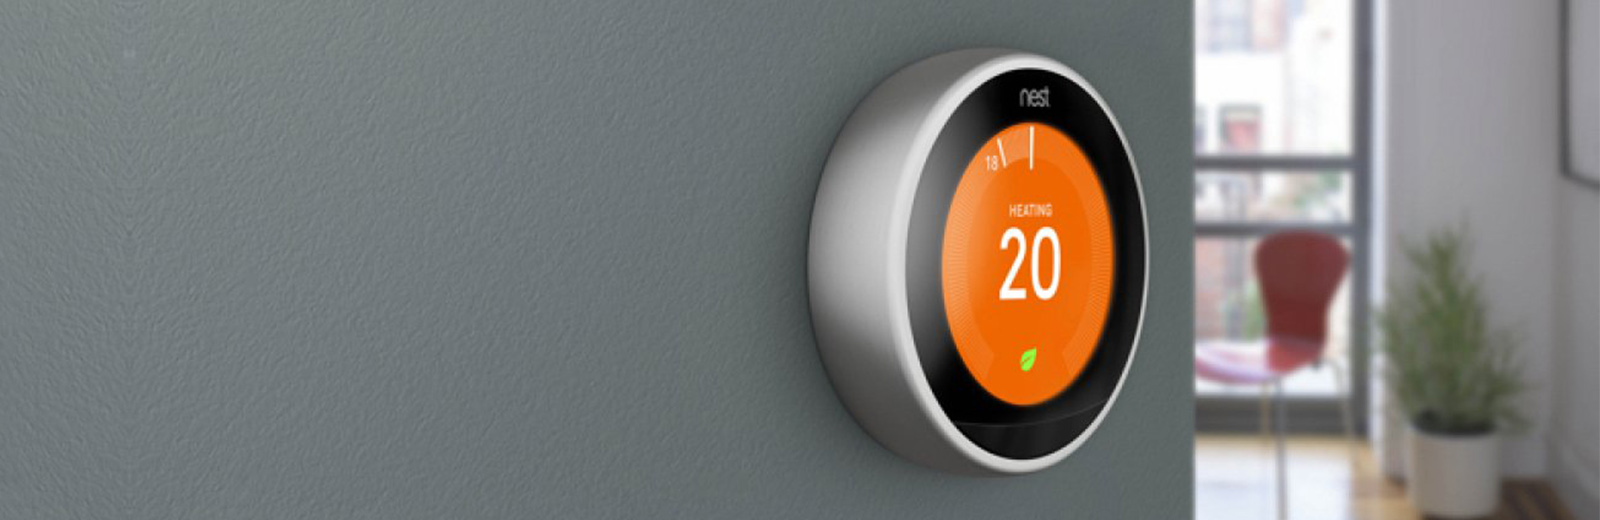 Nest thermostat wall mounted